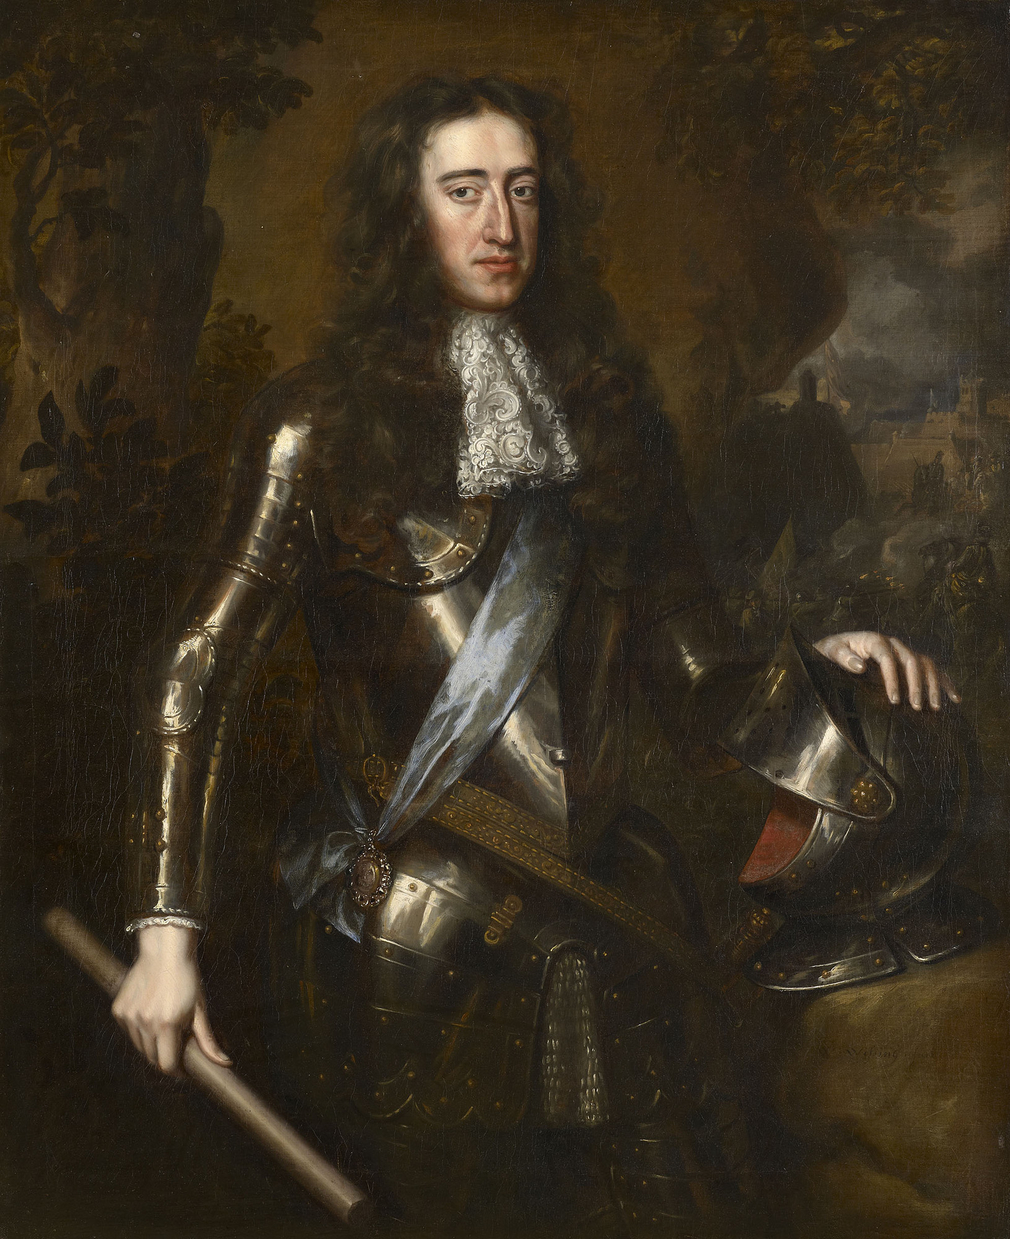 Wissing was a Dutch artist who came to London in 1676, studied with Sir Peter Lely and effectively took over the business for the seven years between Lely's death in 1680 and his own in 1687 (aged only thirty one). All the works by Wissing in the Ro